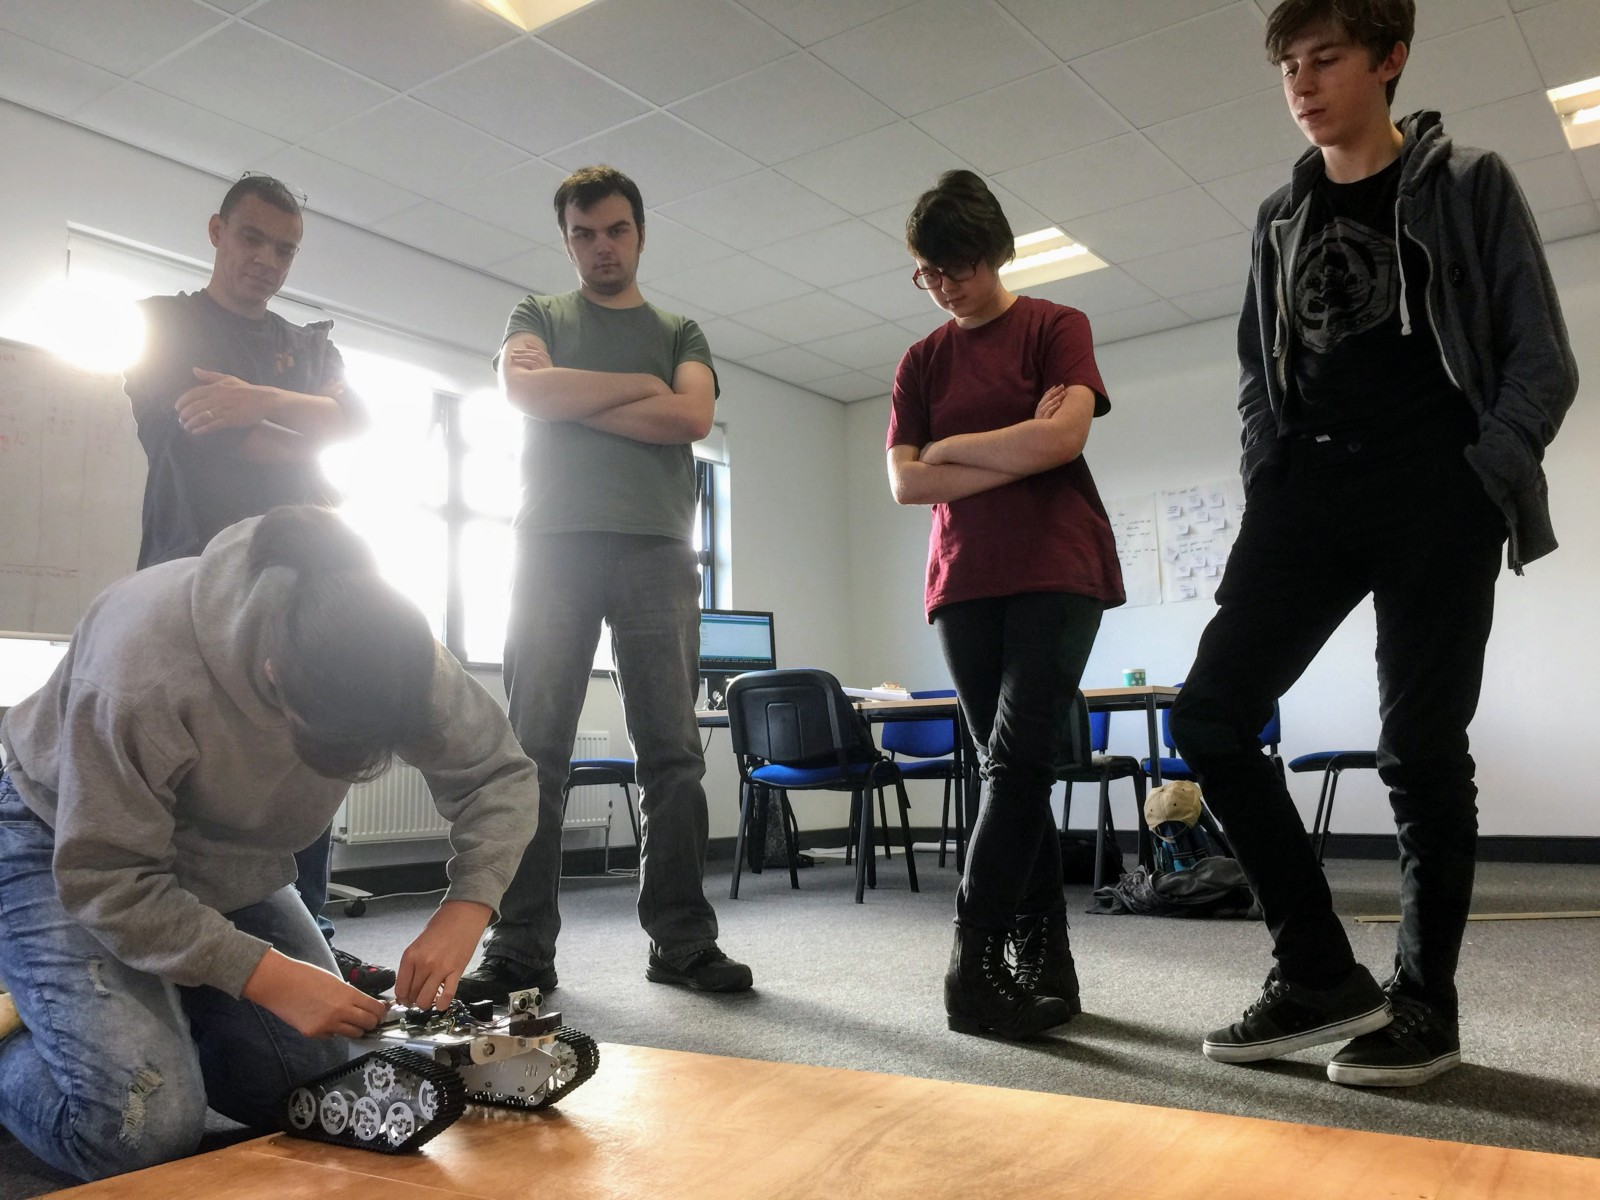 Team Indeciders test their code on the rover robots